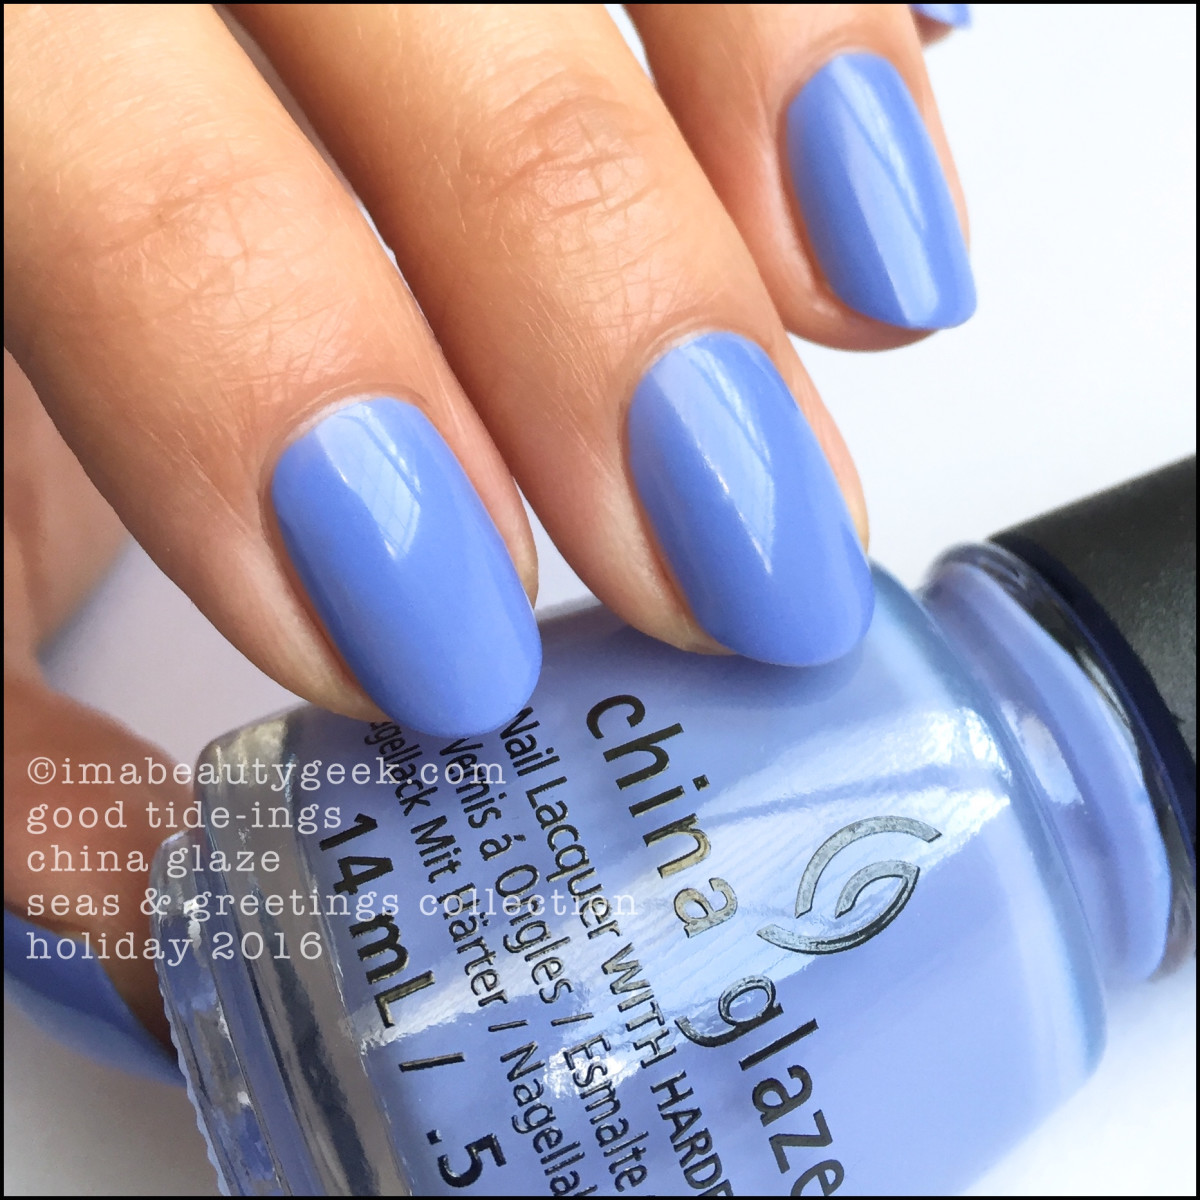 China Glaze Good Tideings_China Glaze Seas Greetings Holiday 2016 Swatches Review